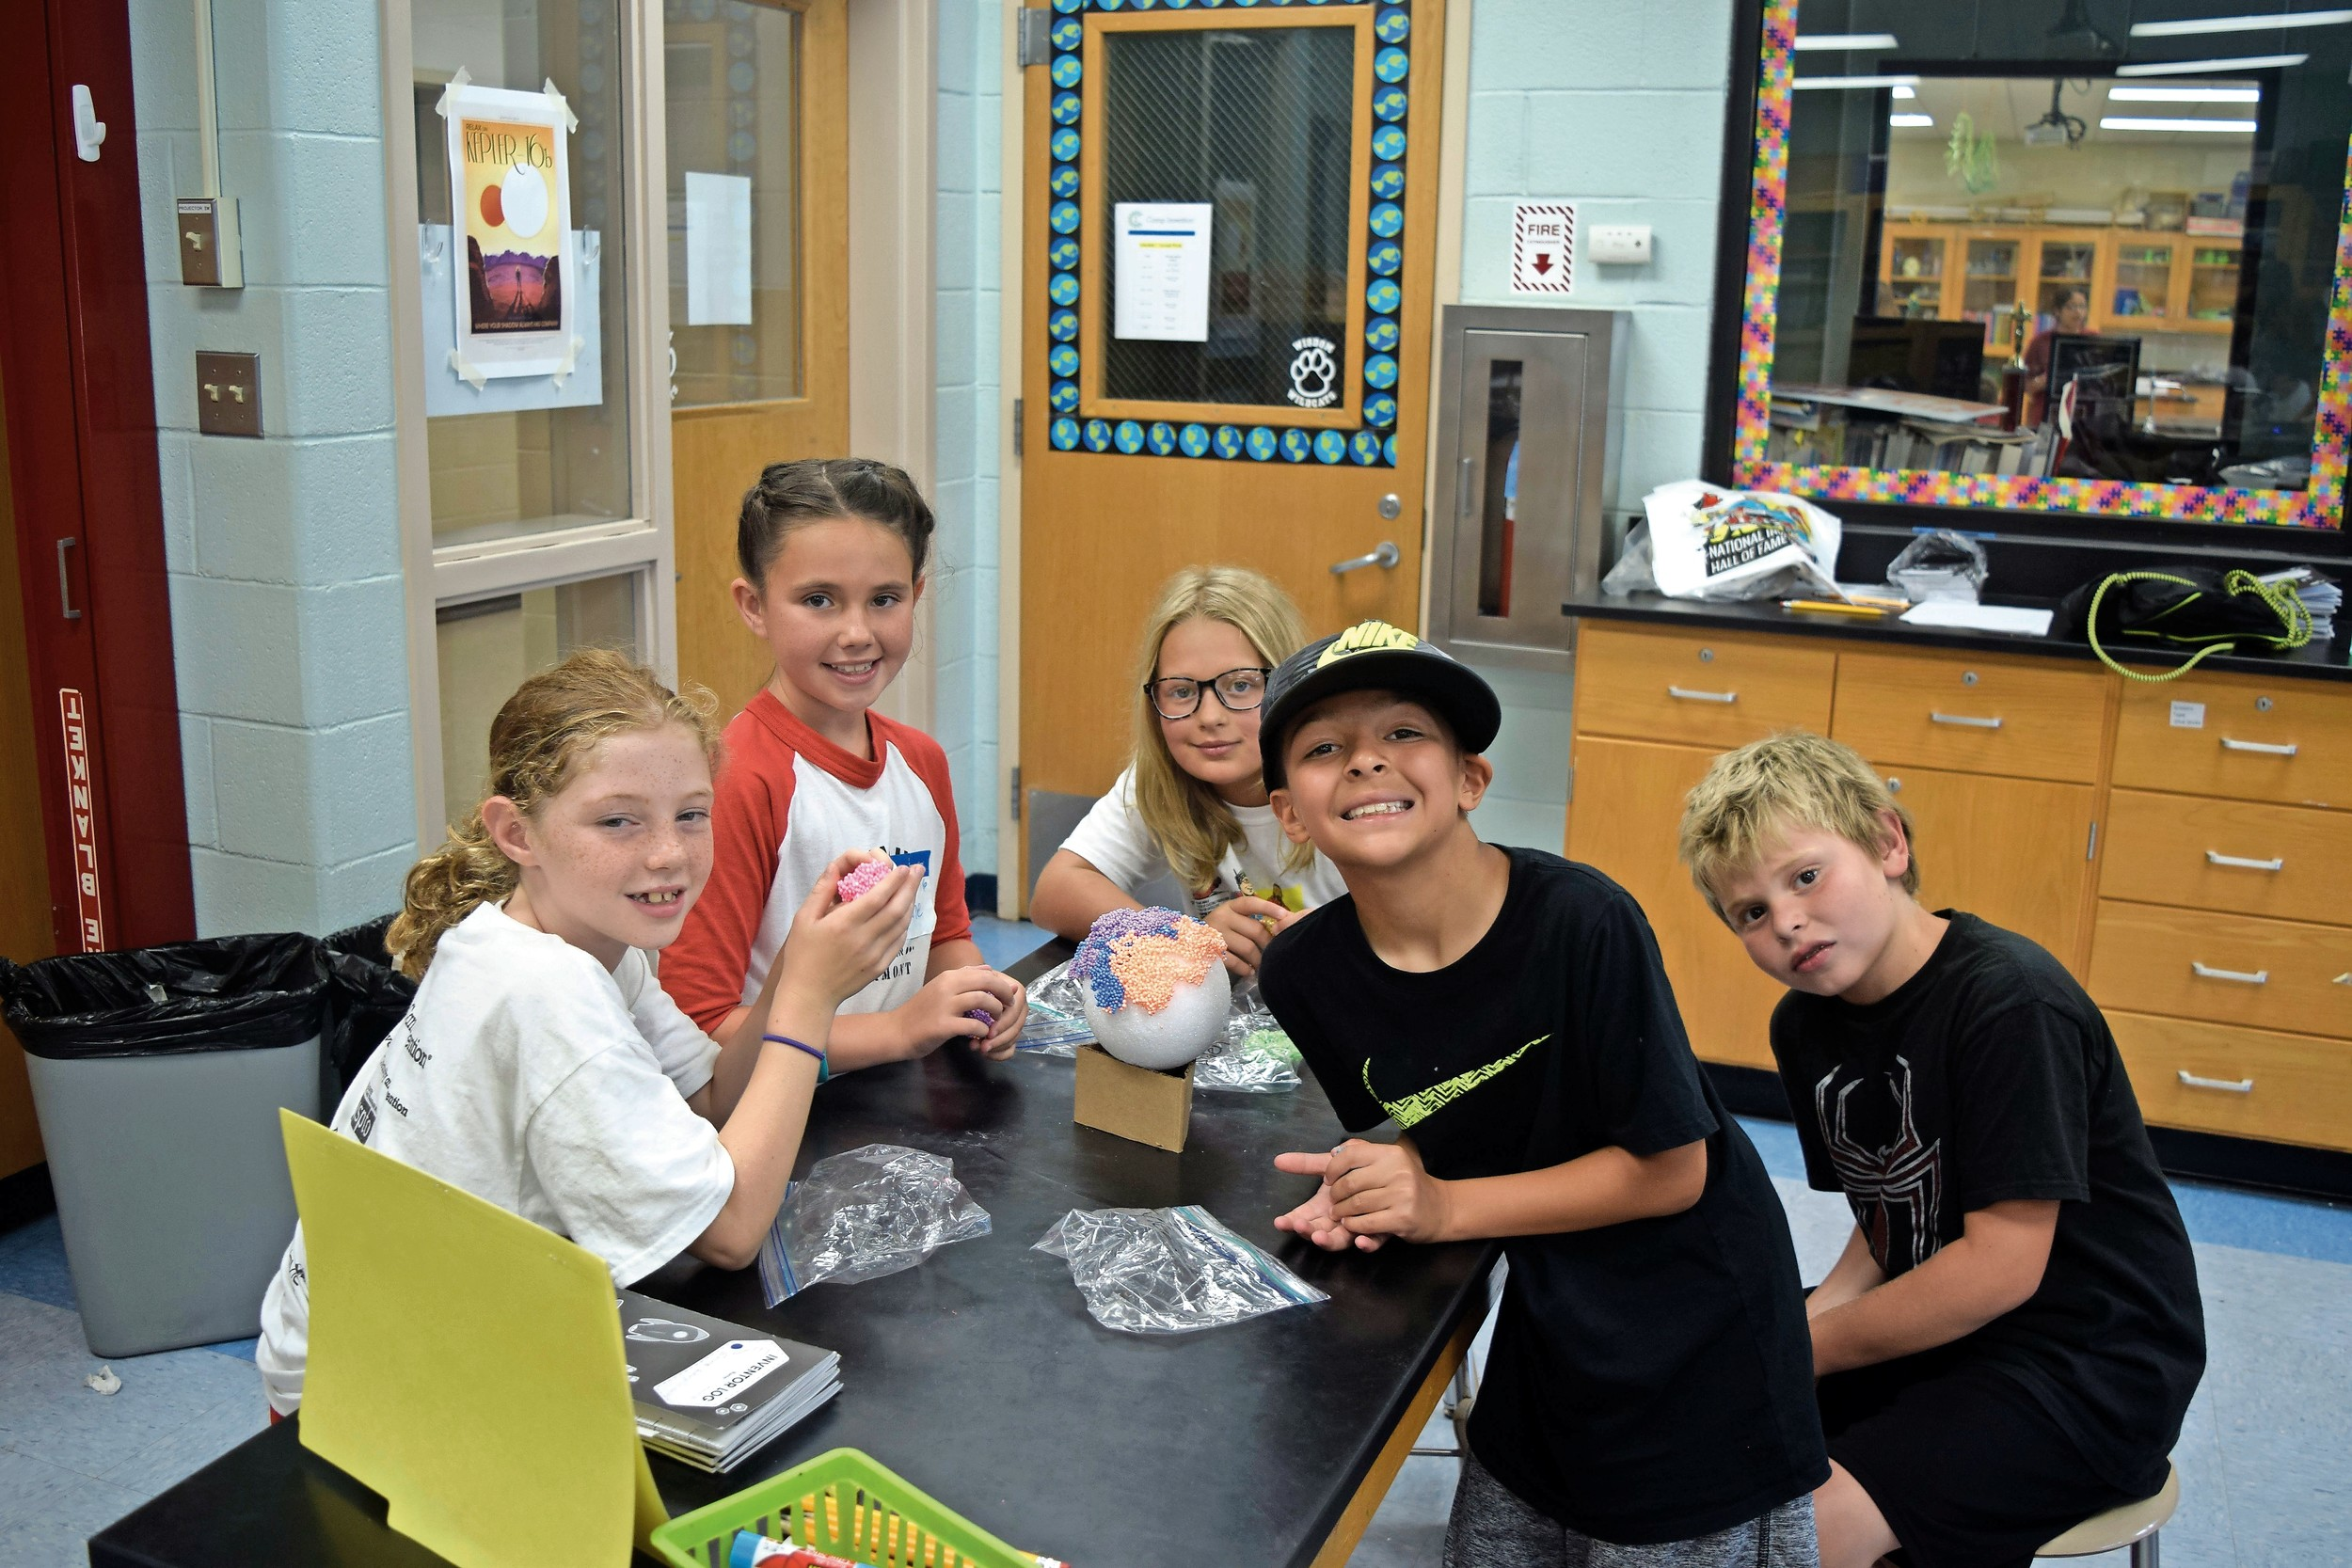 Campers created their own planets using foam and other materials during a Mission Space Makers session.